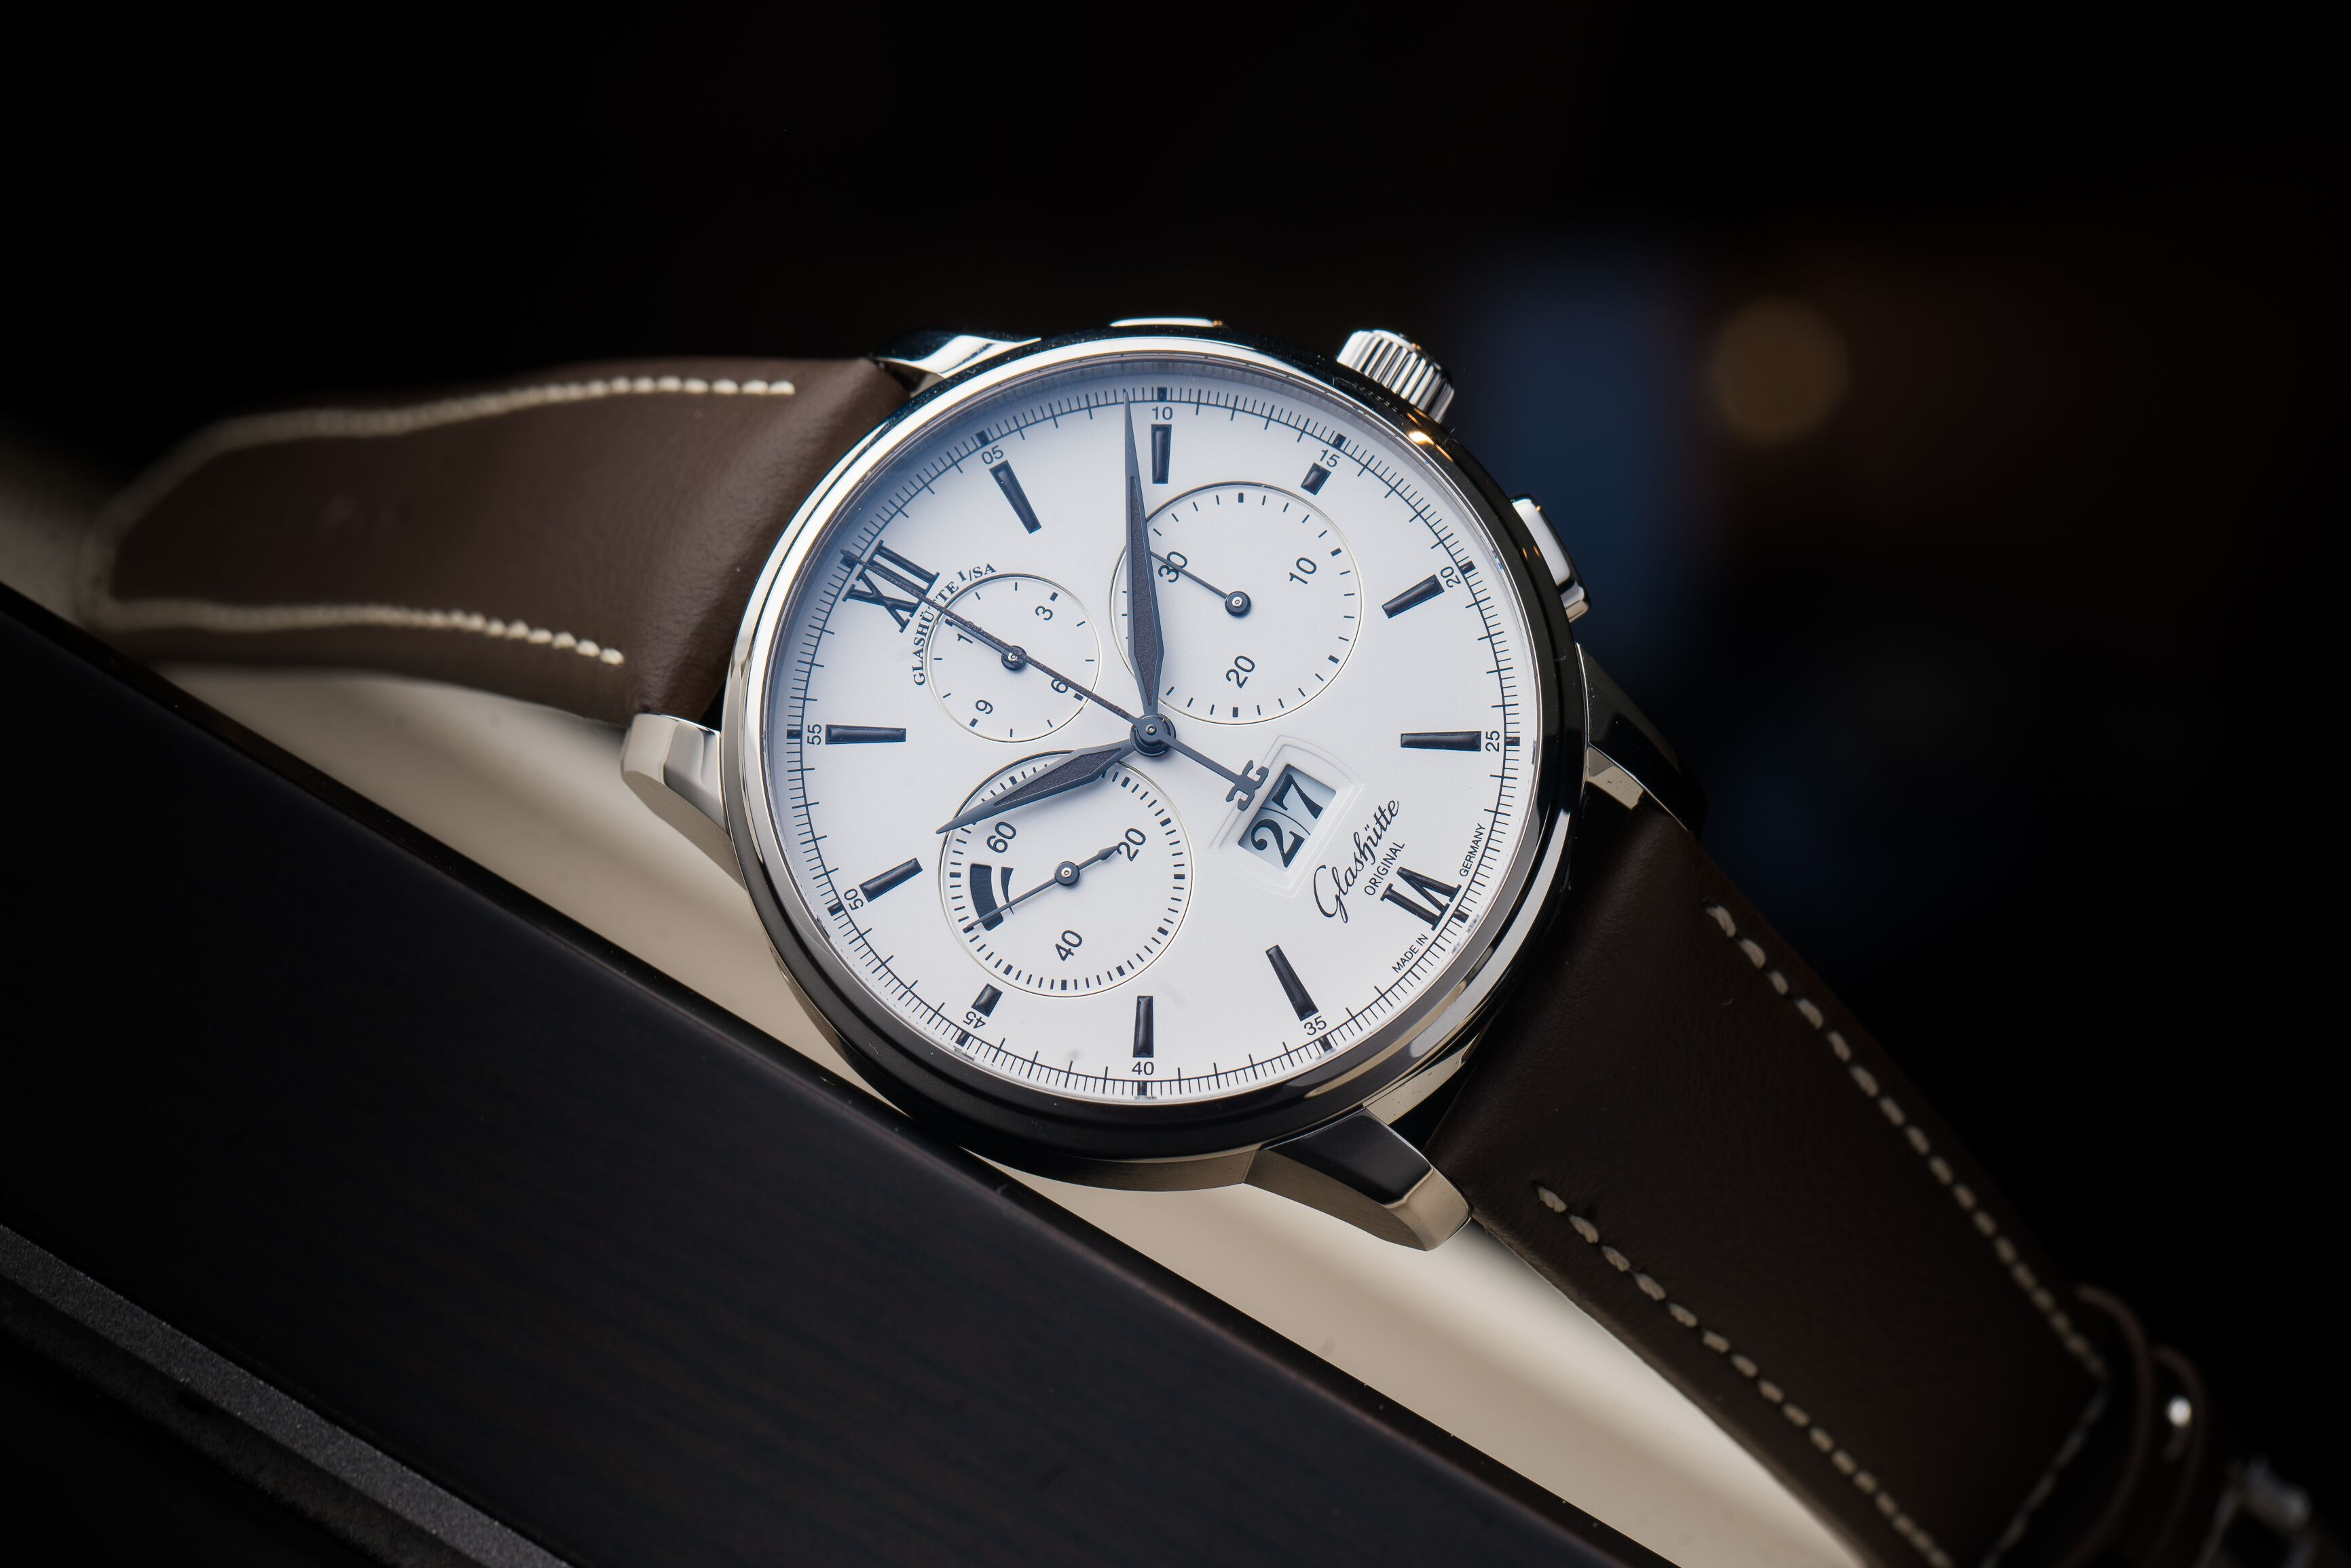 Glashütte Original Senator Chronograph Panorama Date: Exploring The Sportive Side Of Tradition